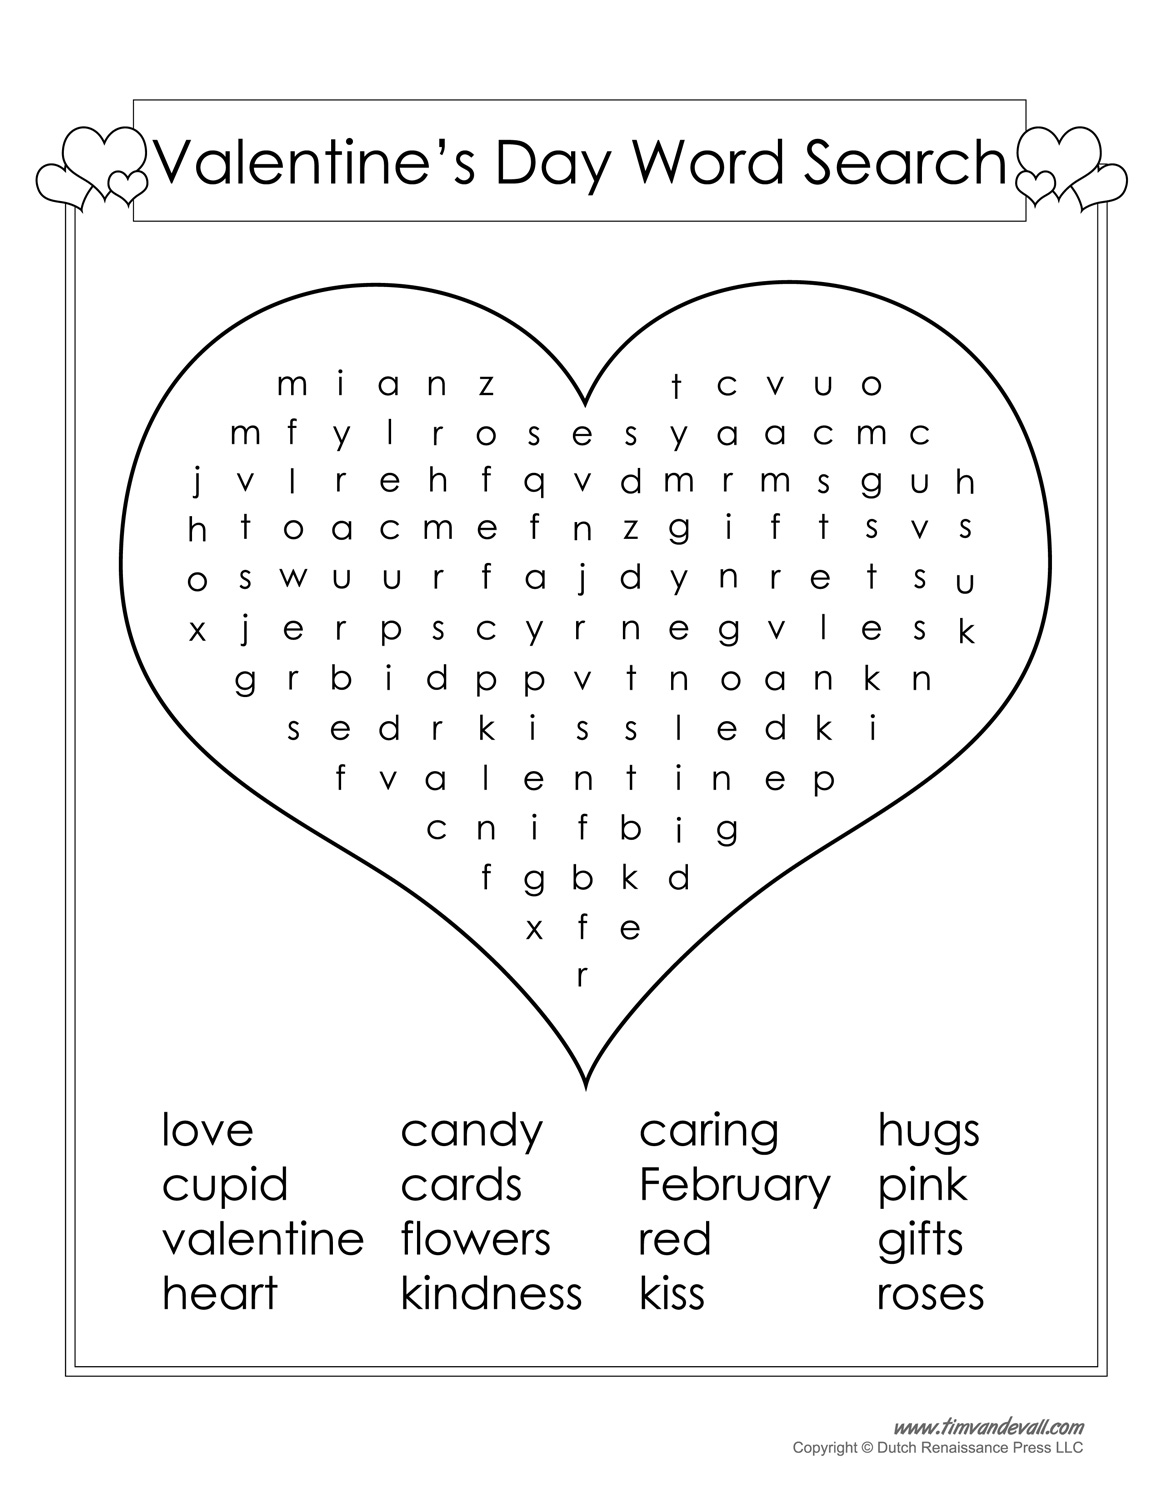 photograph regarding Valentine Crossword Puzzles Printable named 12 Valentines Working day Phrase Appear